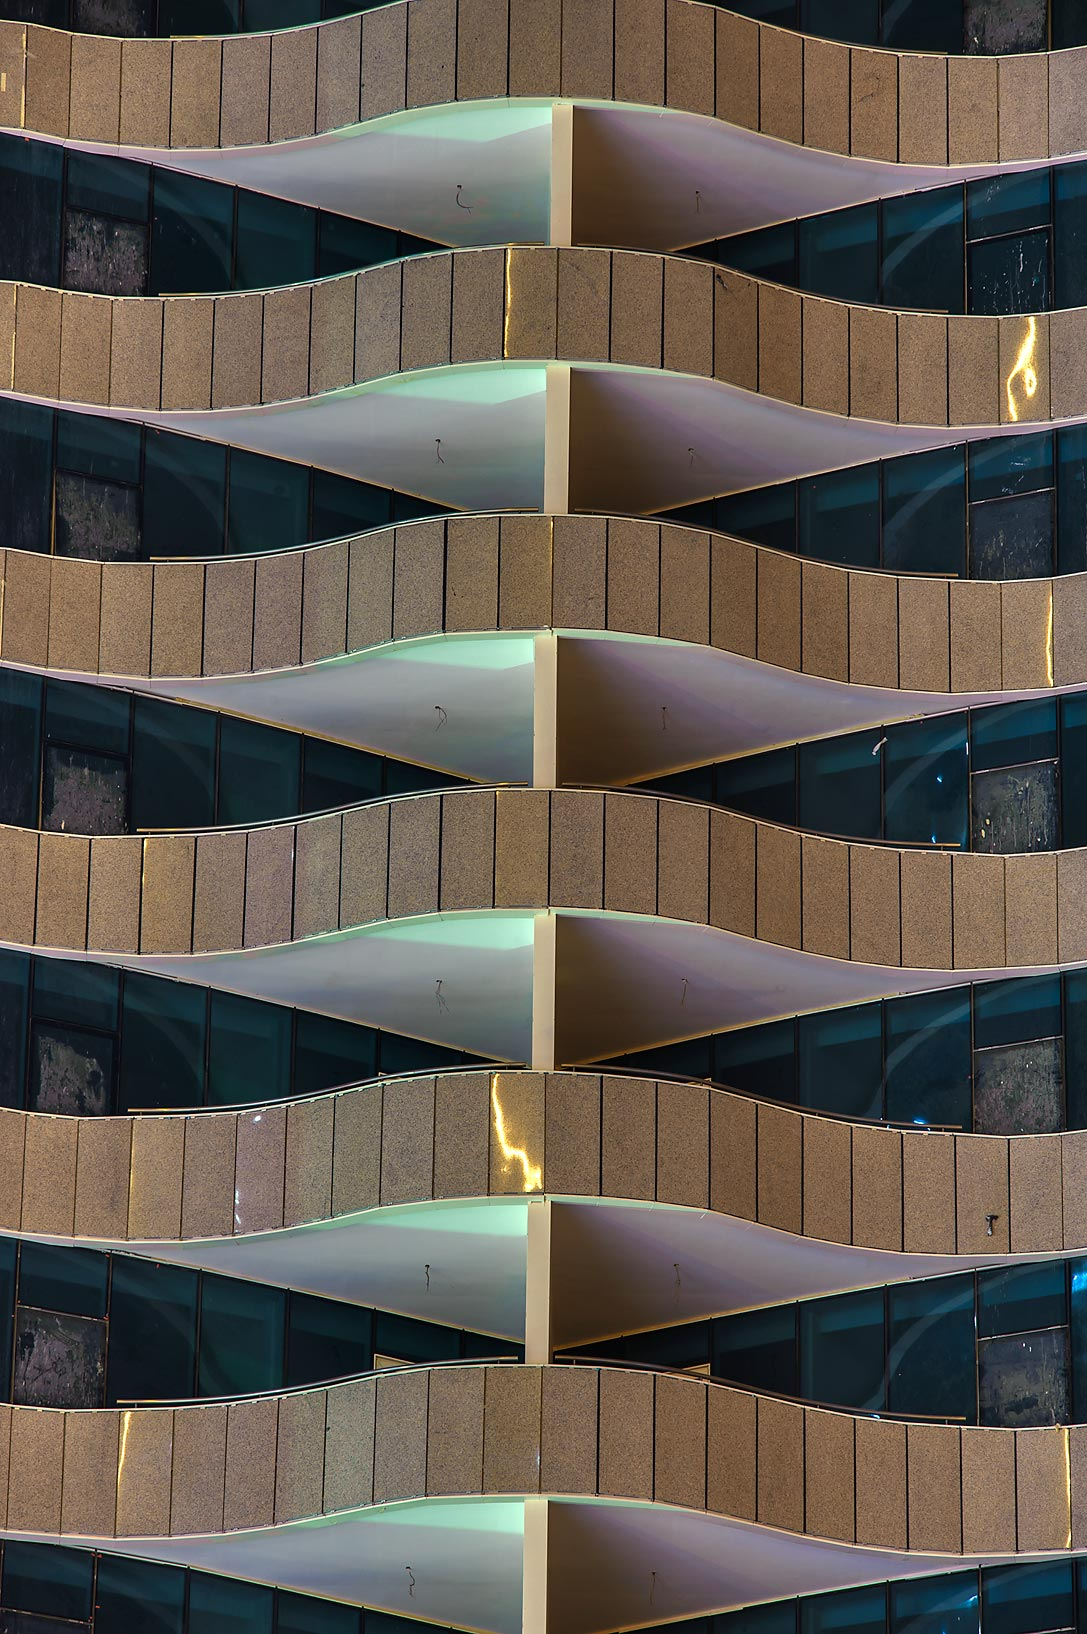 Pattern of balconies in West Bay from Q-Shield head Offices St.. Doha, Qatar